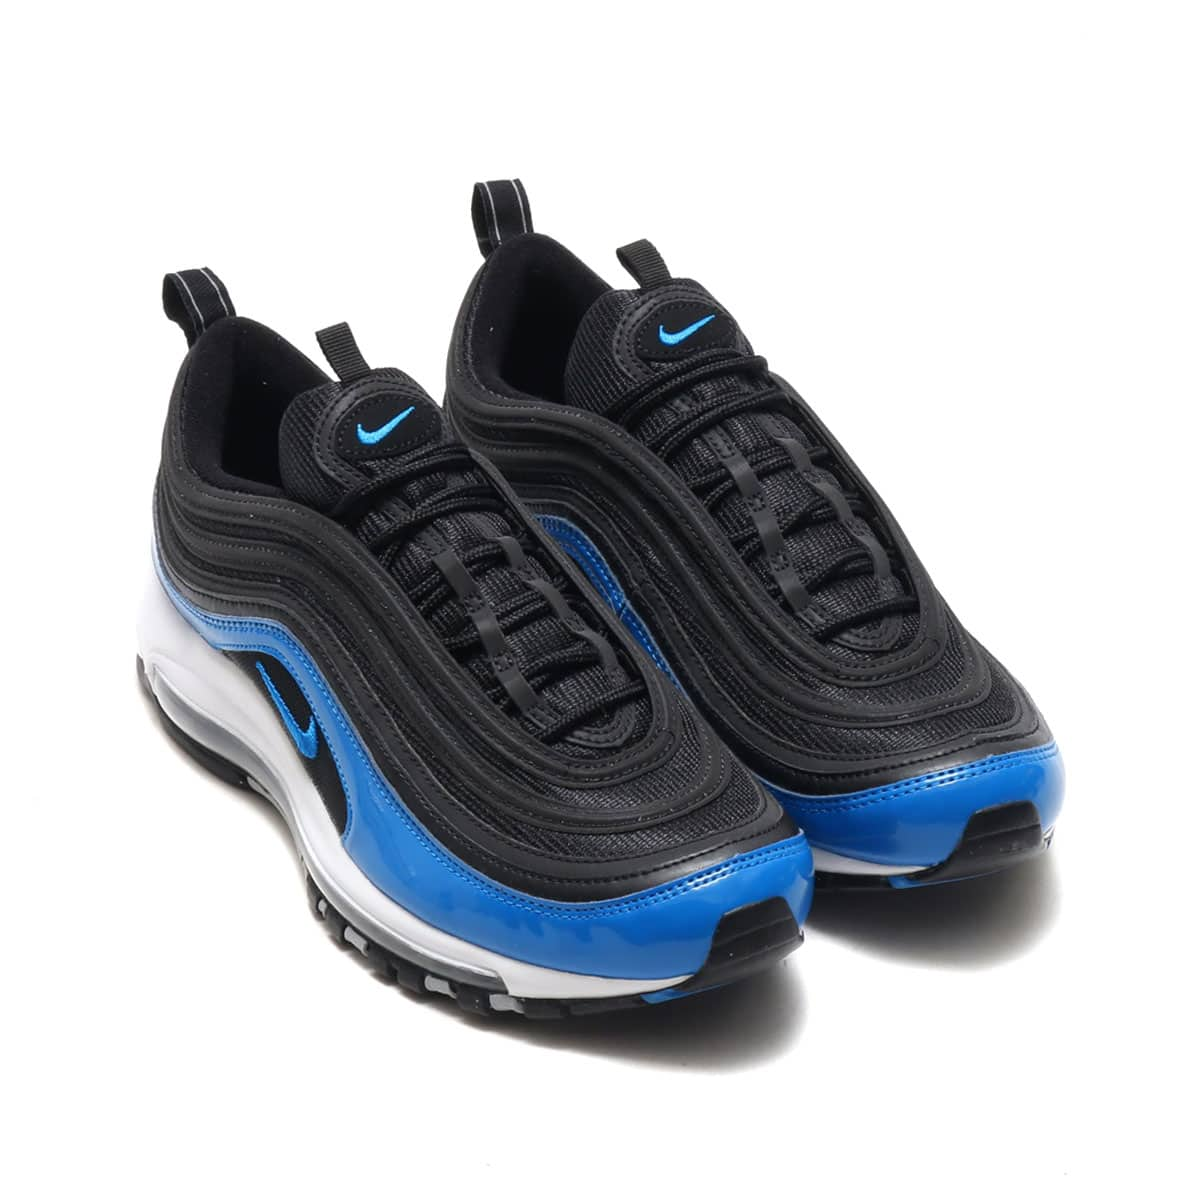 cff4aa1f4b NIKE AIR MAX 97 BLACK/BLUE NEBULA-WOLF GREY-WHITE_photo_large